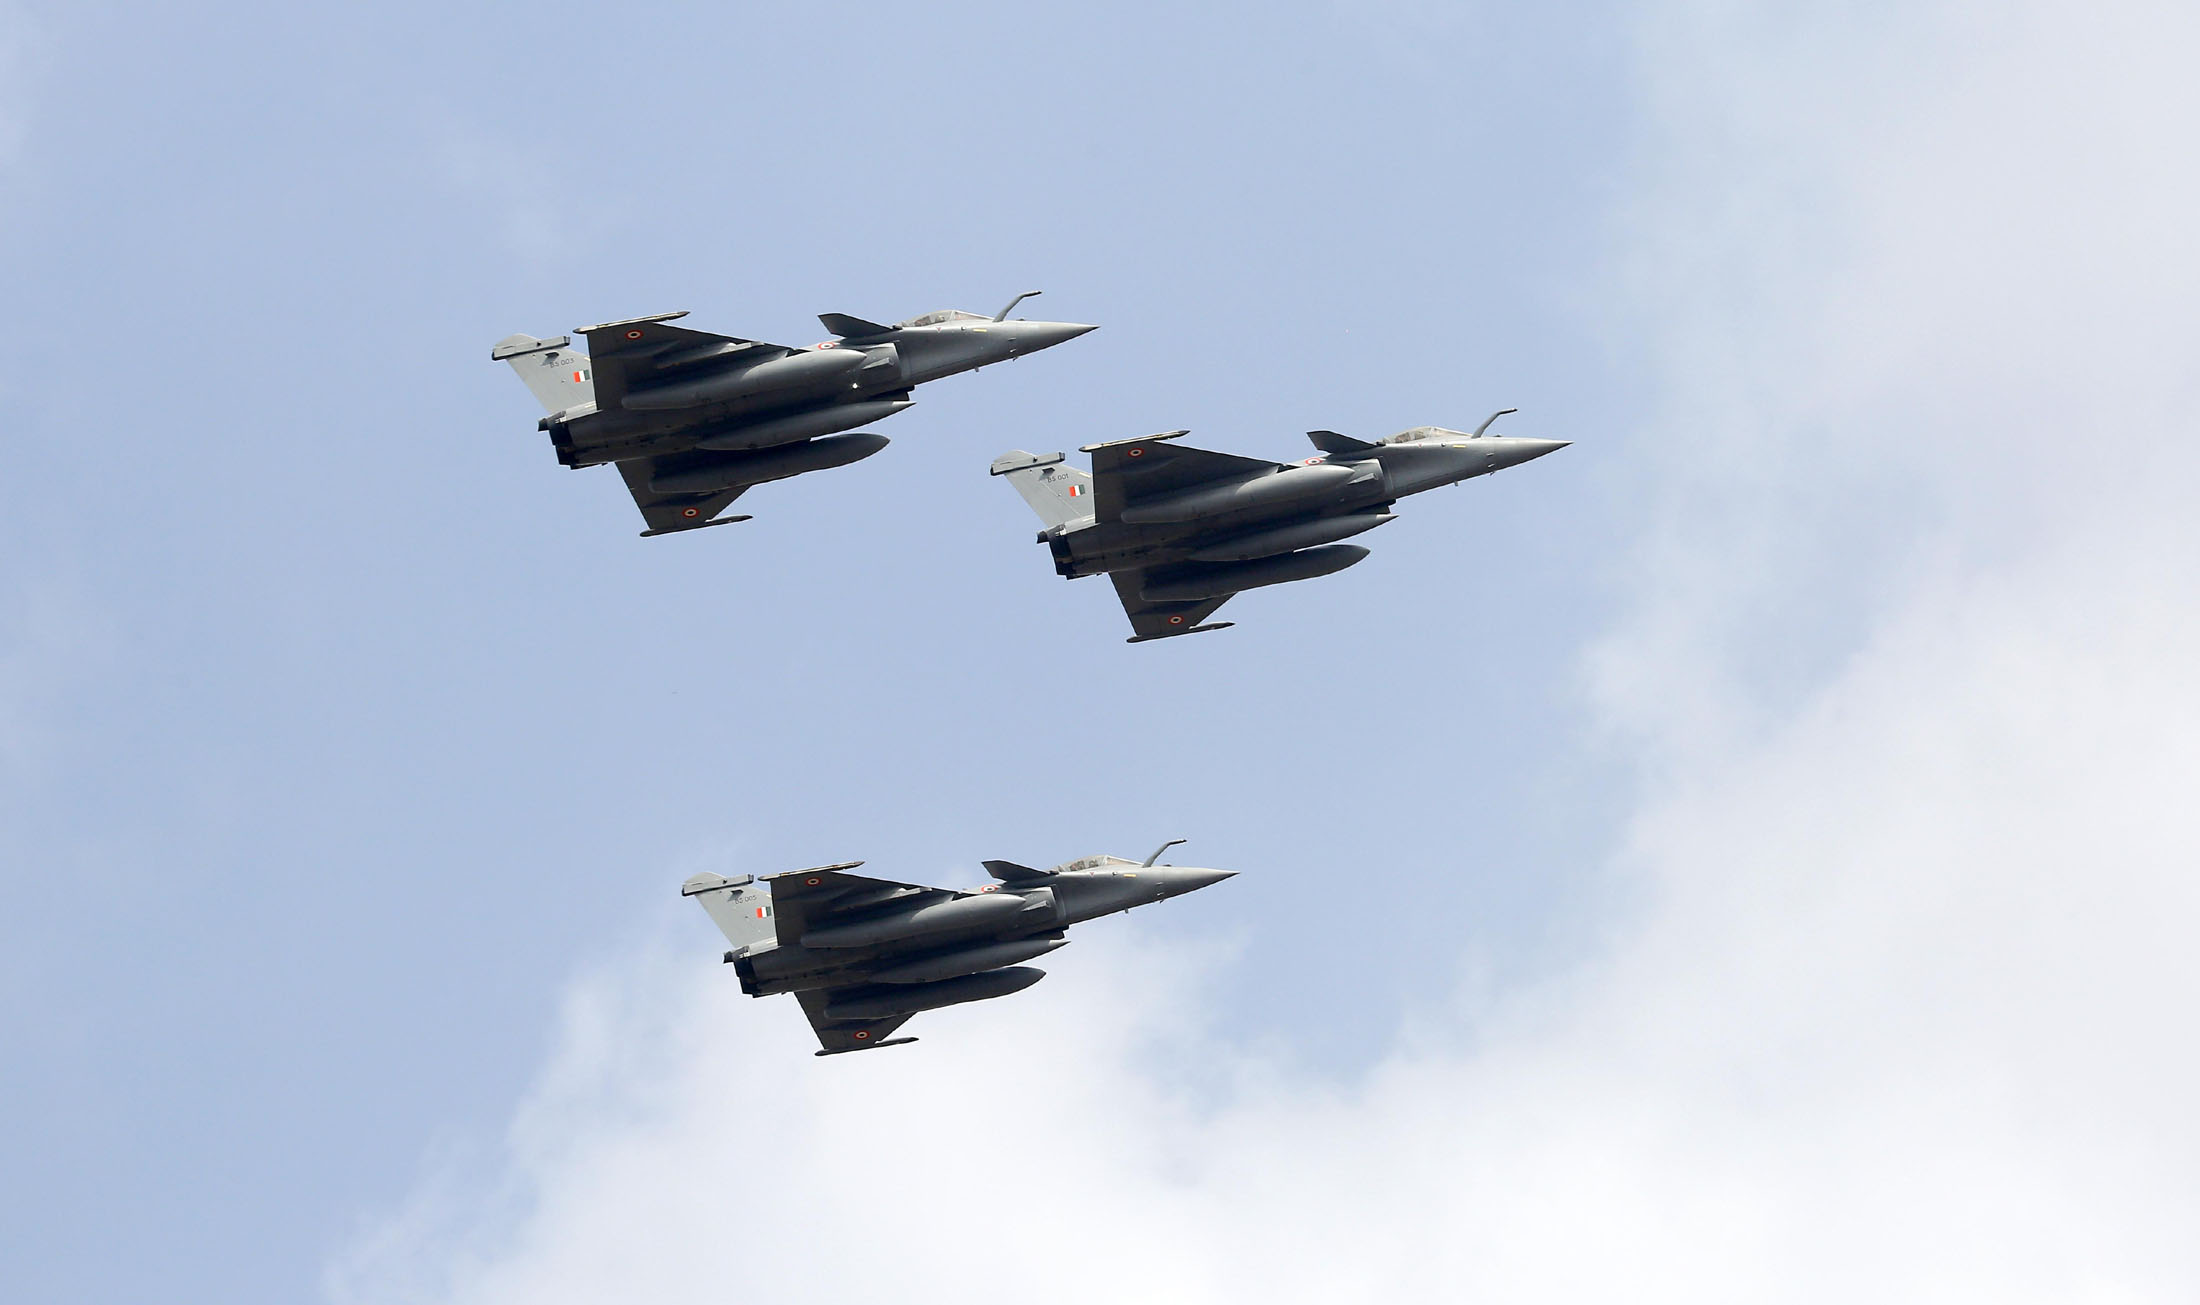 Glimpse of the Aero India-2021 biennial Air Show, at the Air Force Station, Yelahanka, in Bengaluru on February 03, 2021.